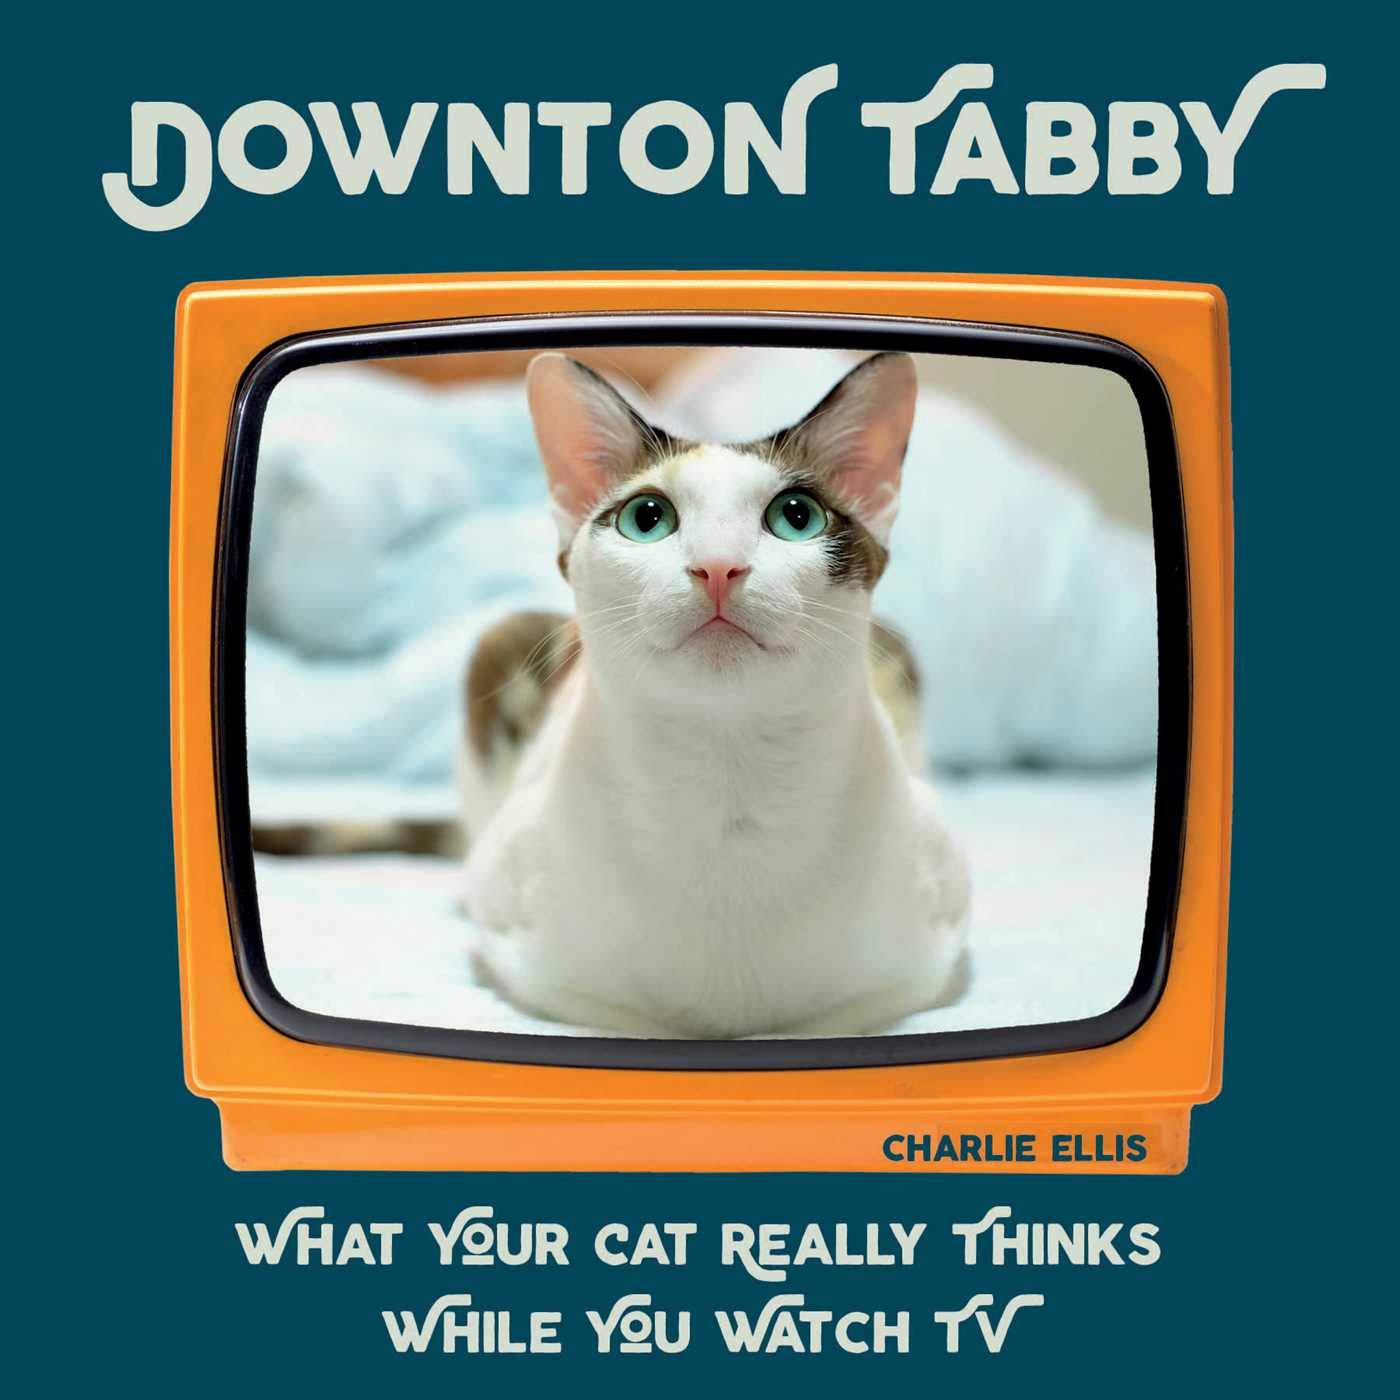 Downton Tabby: What Your Cat Really Thinks While You Watch TV - Catoro Cat Cafe